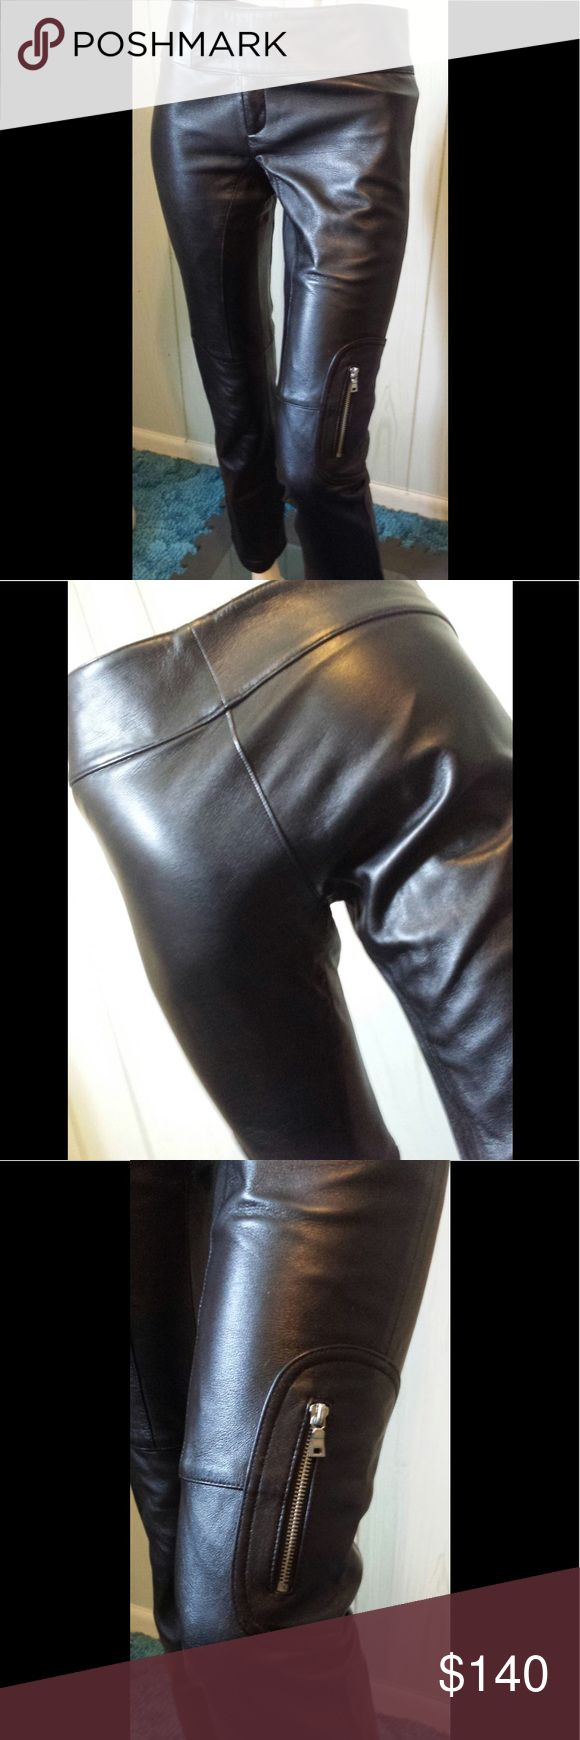 """LAUNDRY by SHELLI SEGAL Black Leather Pants XS Bad-Ass skin tight black leather pants by LAUNDRY by SHELLI SEGAL. Low Waisted w/flared legs, front zip, dbl metal clasp closure. Pocketless in back. Fully lined. Figure flattering, Fierce & Fab. These are really well made.  SZ:N/I (no tag) Fit XS  Waist:29"""" or 30"""" snug Hips:35-36"""" Lgth:Inseam is 28"""" Rise:App 8 1/2"""" Label:Laundry By Shelli Segal sig on both sides of waist interior Style # P6172 Material:Leather (Lined in Nylon)  Condition: EX/No…"""